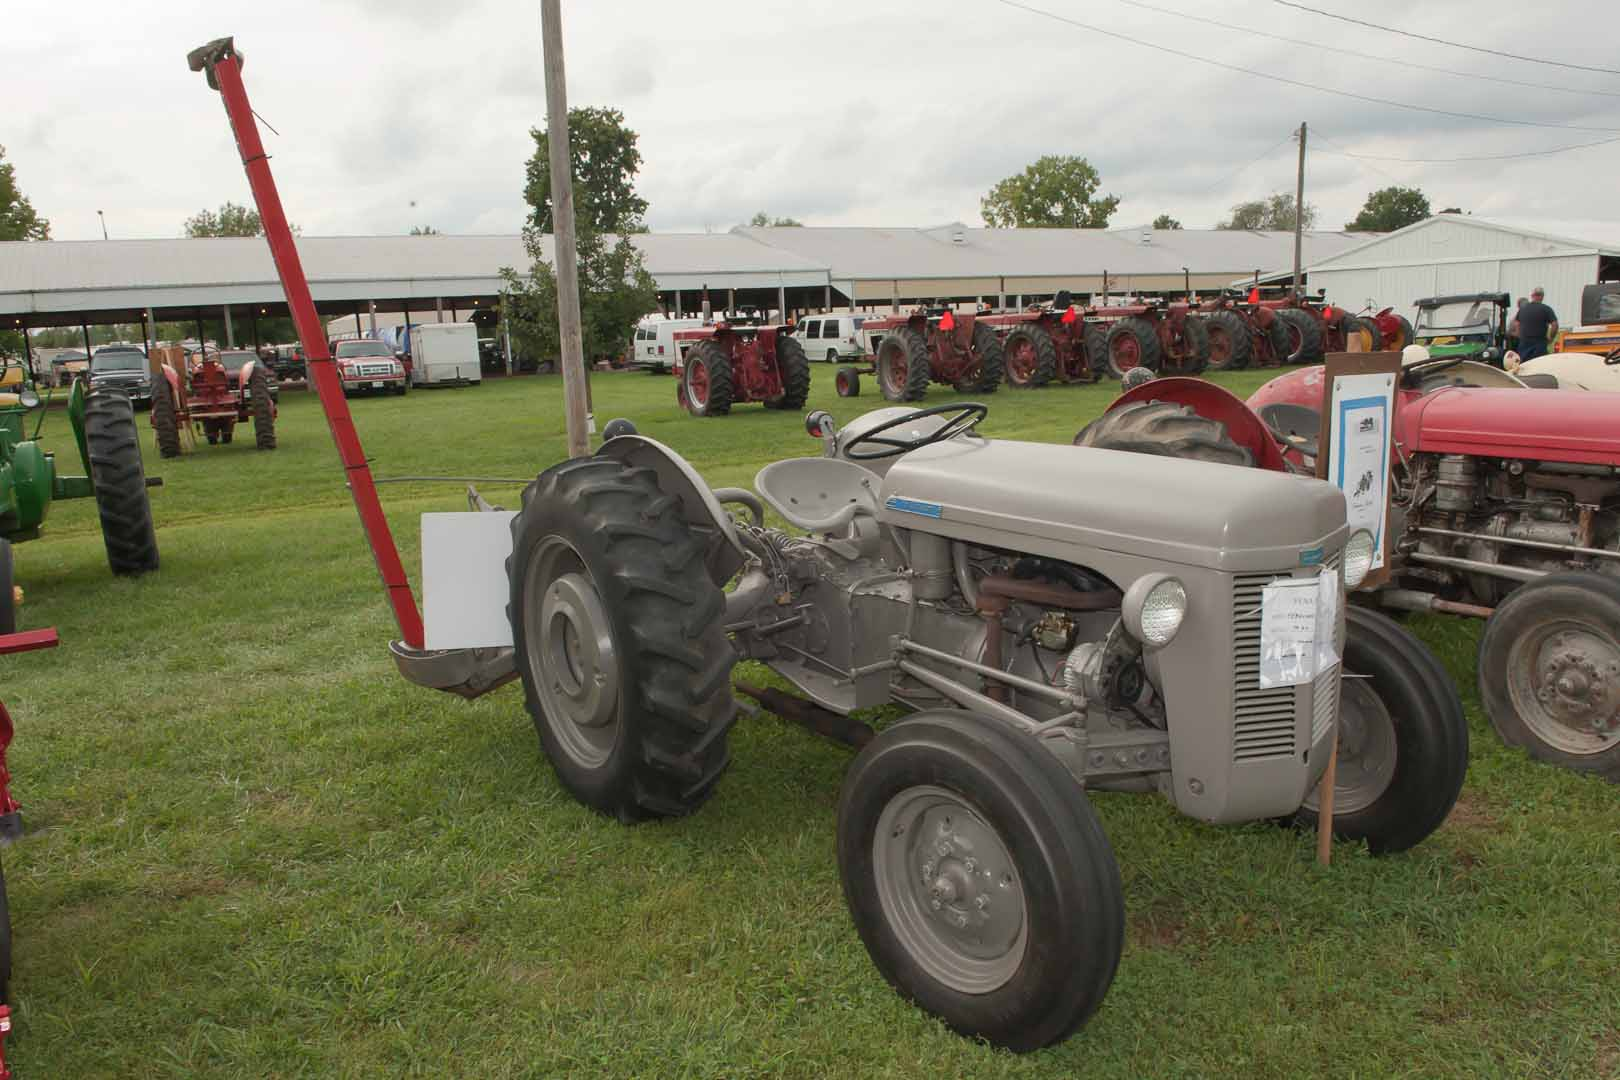 1950 TO-20 SN TO-33934 owned by Danna Eller of Waxahatchie, TX.  Completely rebuilt in 2016, bought in Willis, TX.  Implement is a 1952 Ferguson FEO-20 Dynabalance mower.